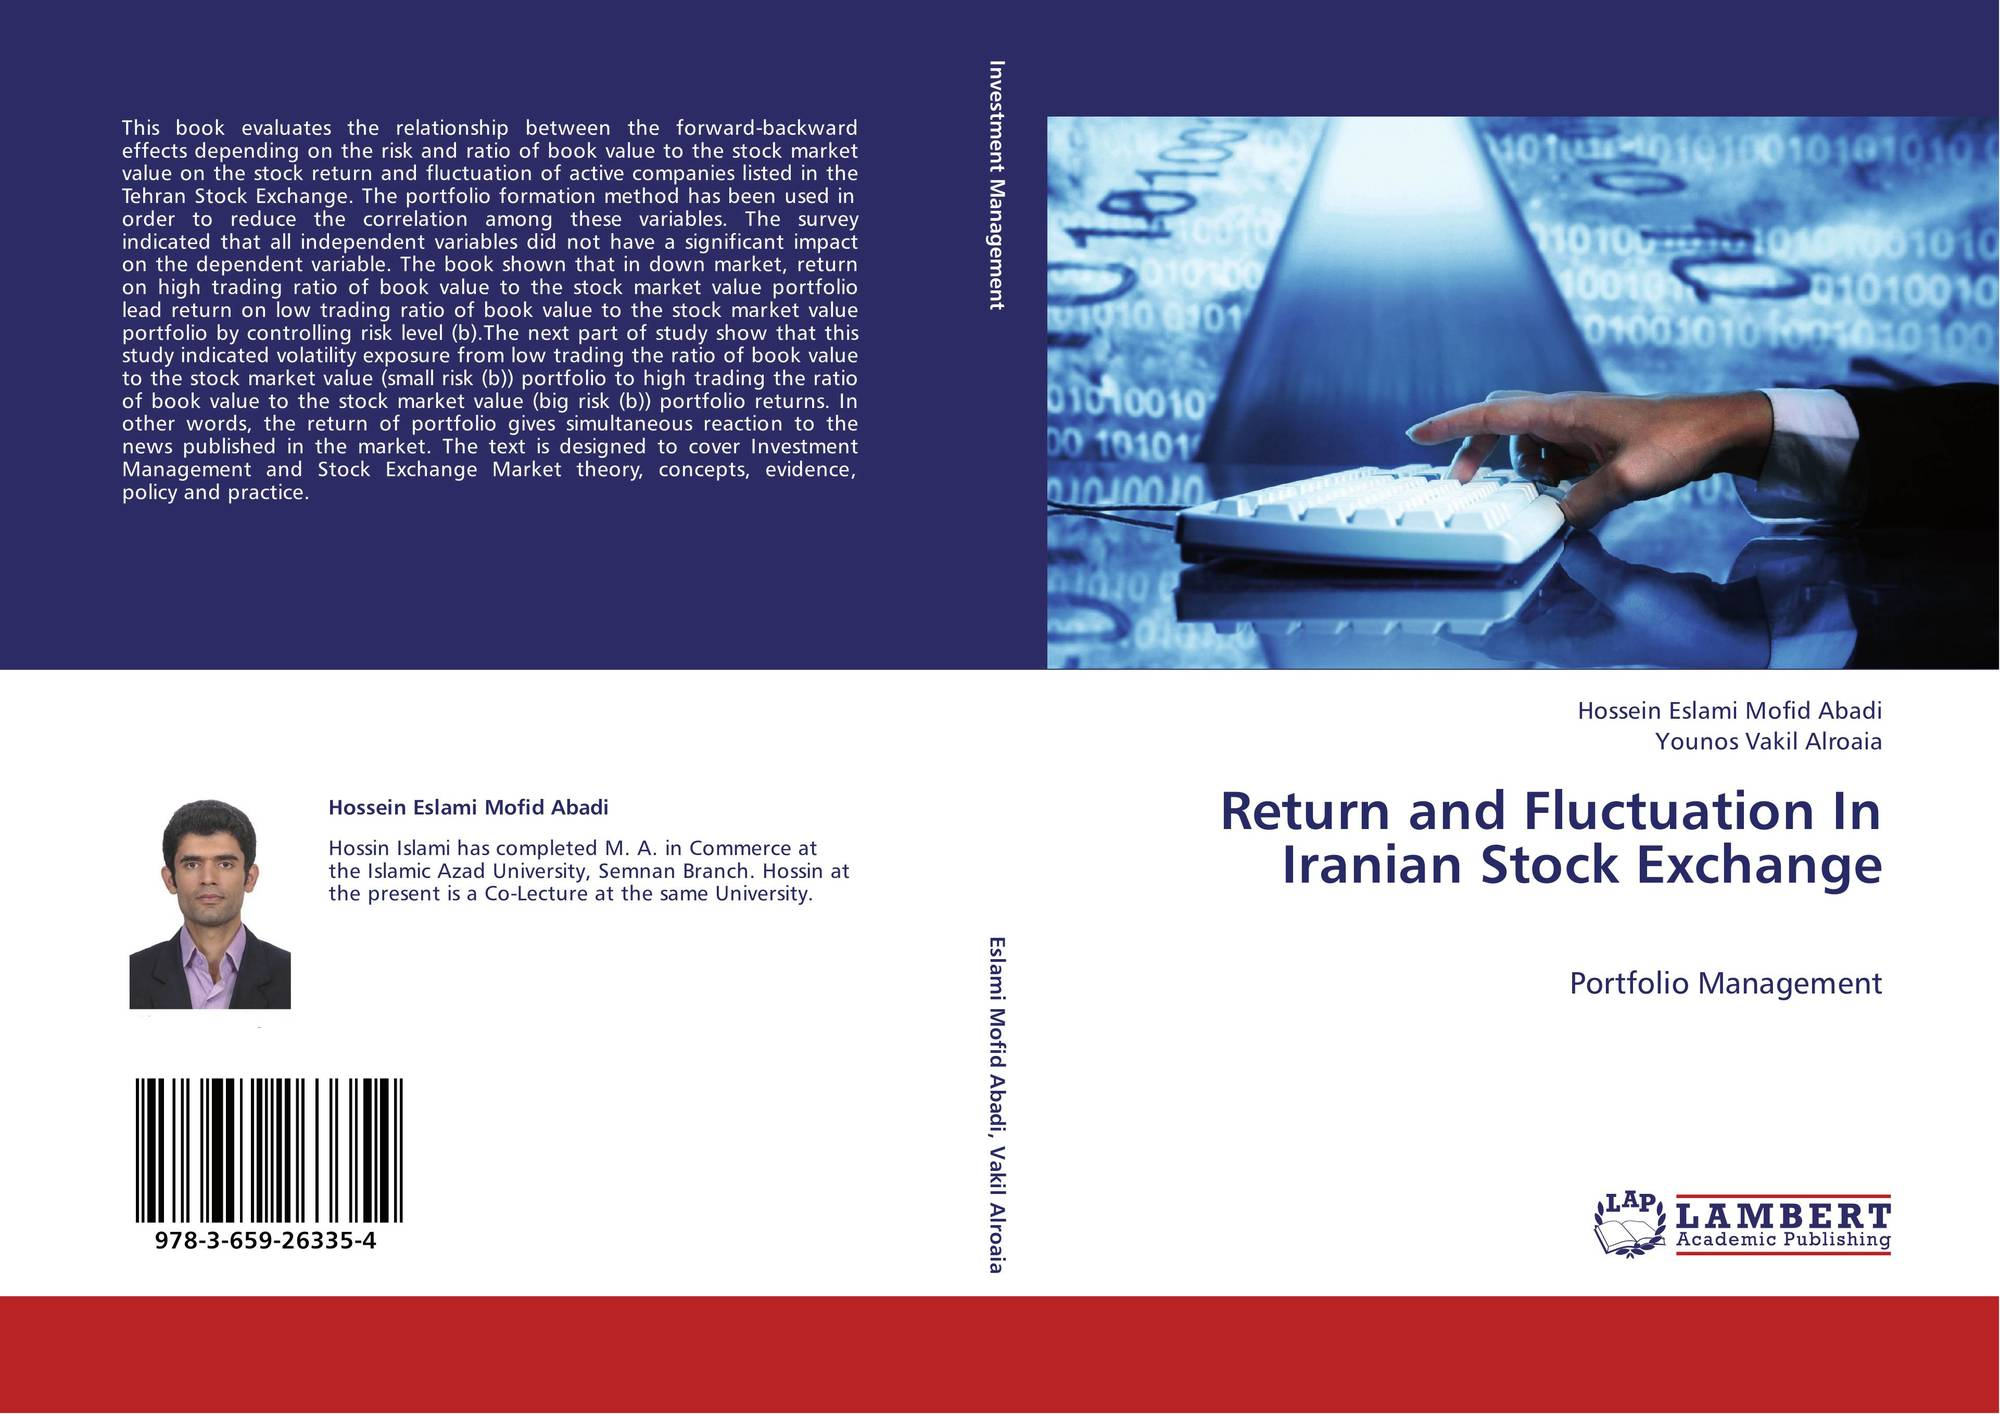 essays on risk and return in the stock market During periods of high risk, stock market valuations are hiring return spread comoves negatively with value essays in asset pricing and labor markets.